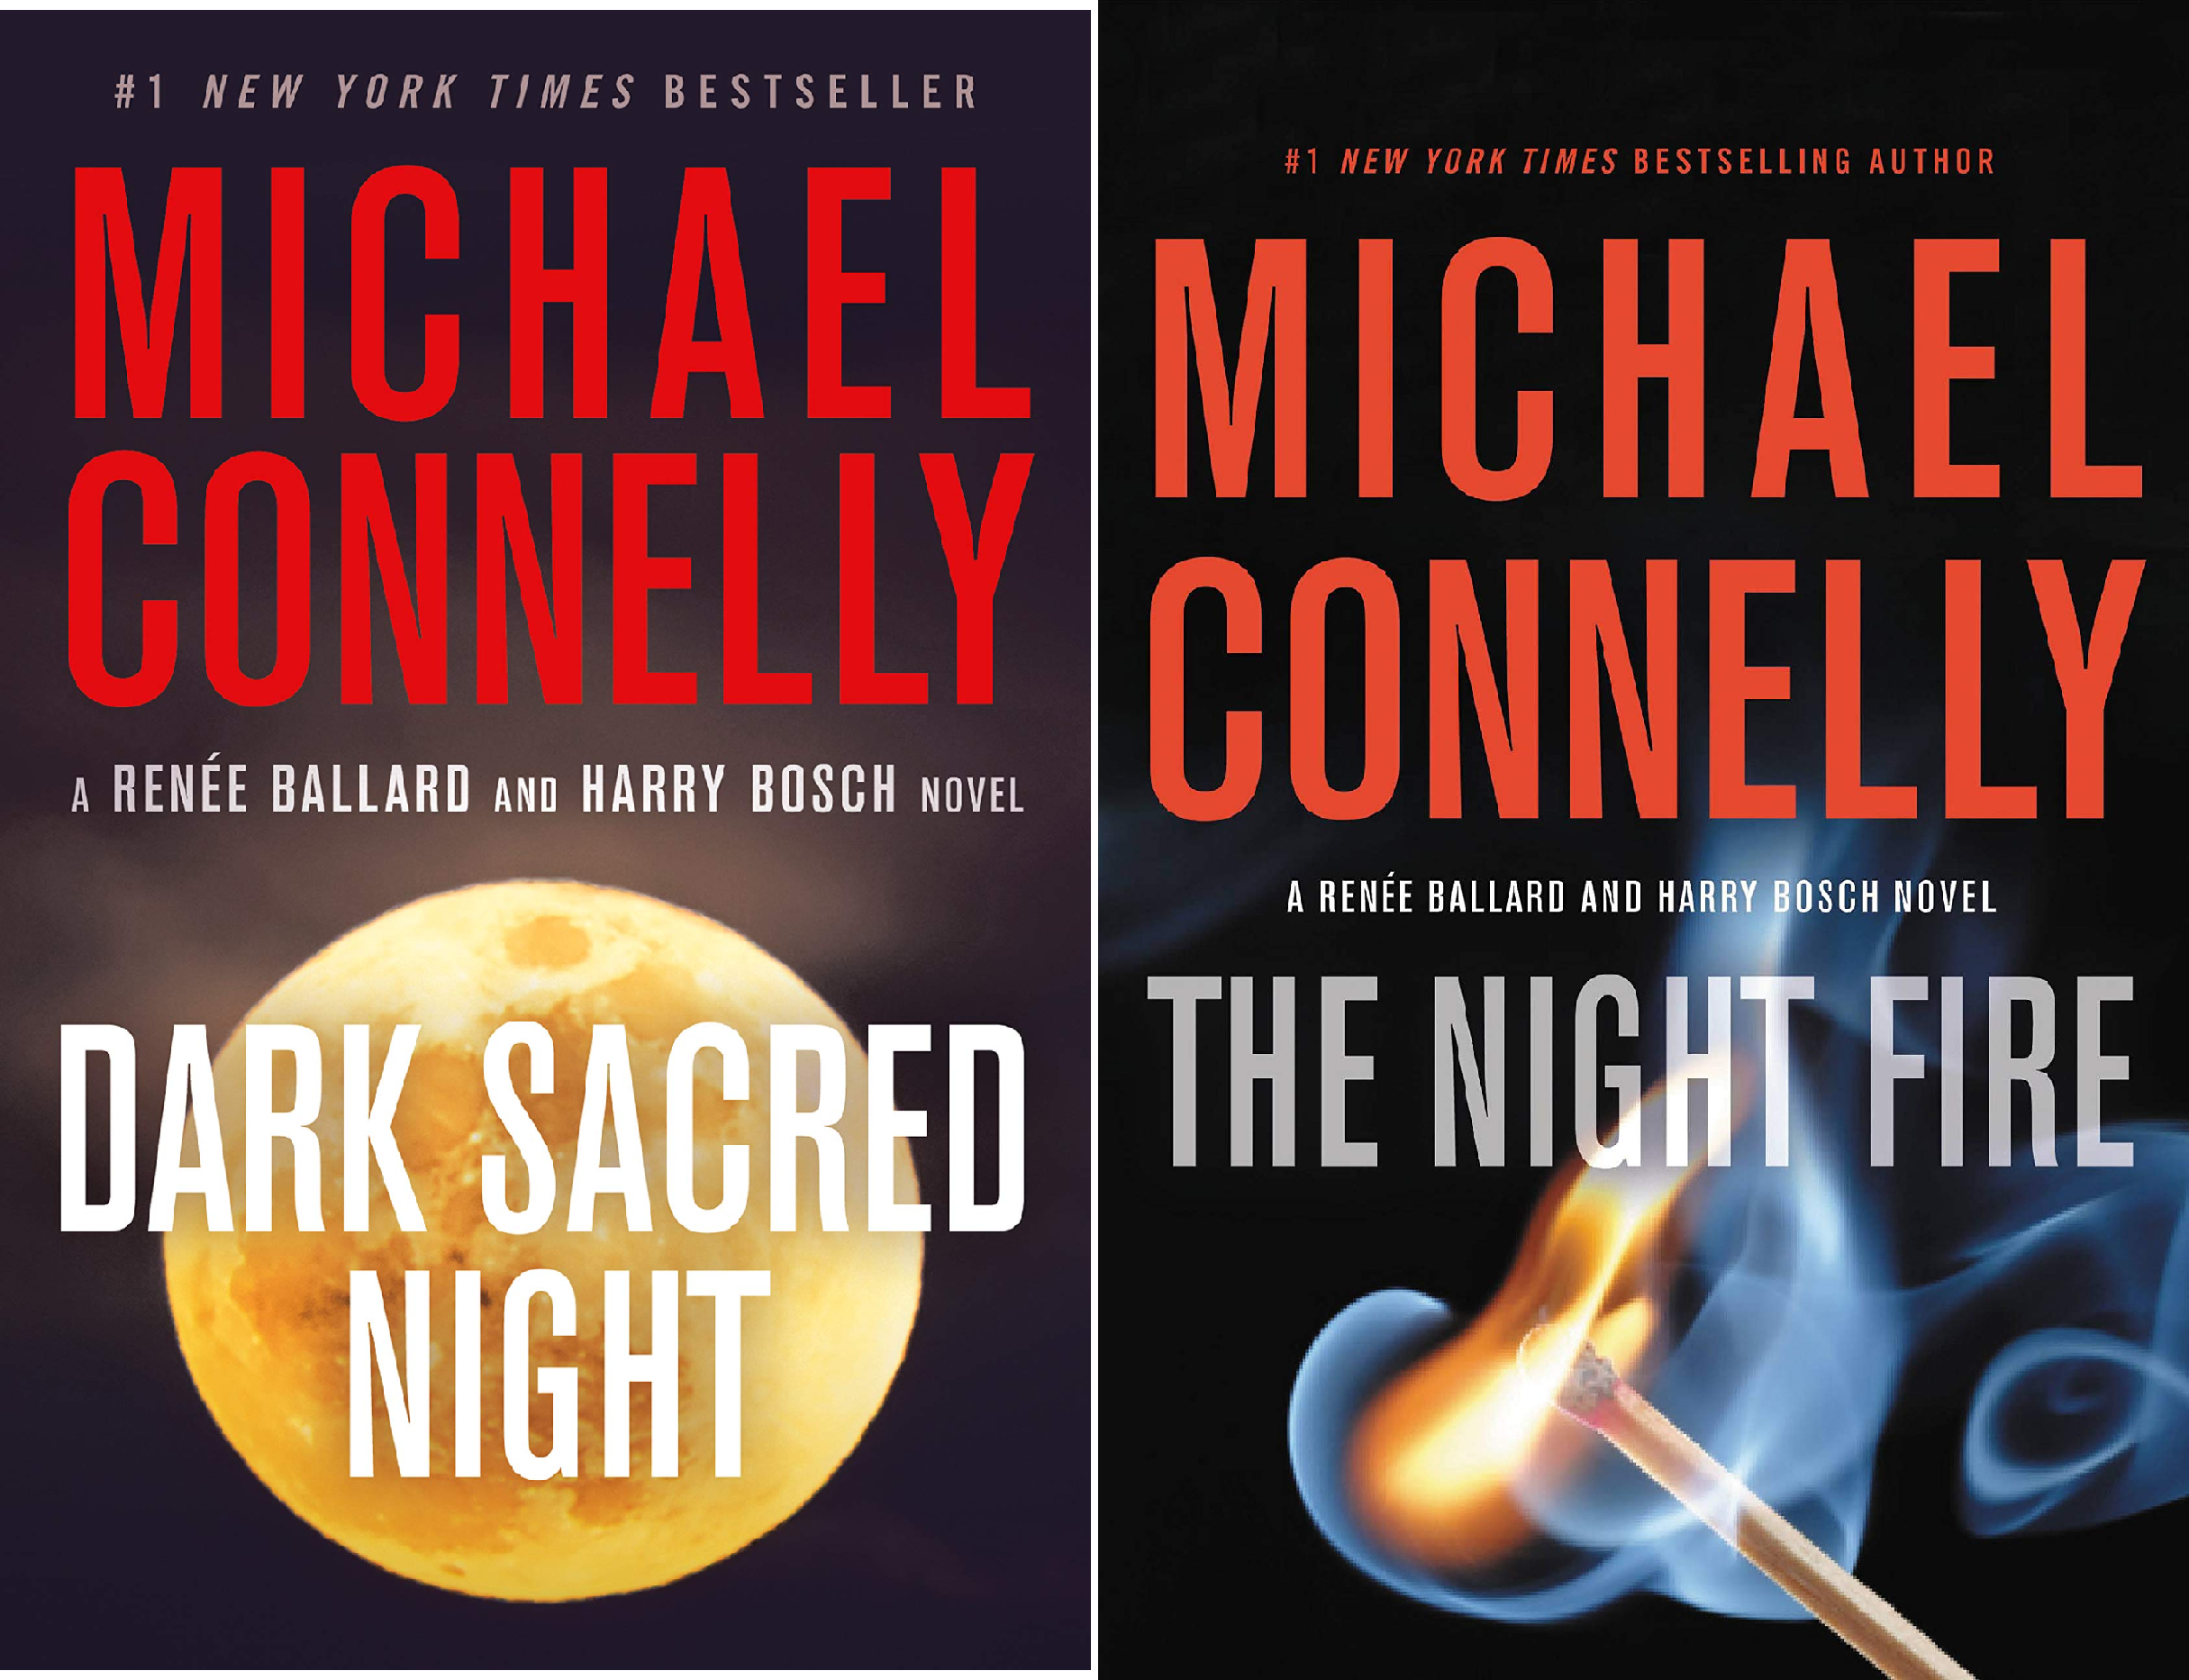 A Renée Ballard and Harry Bosch Novel (2 Book Series)